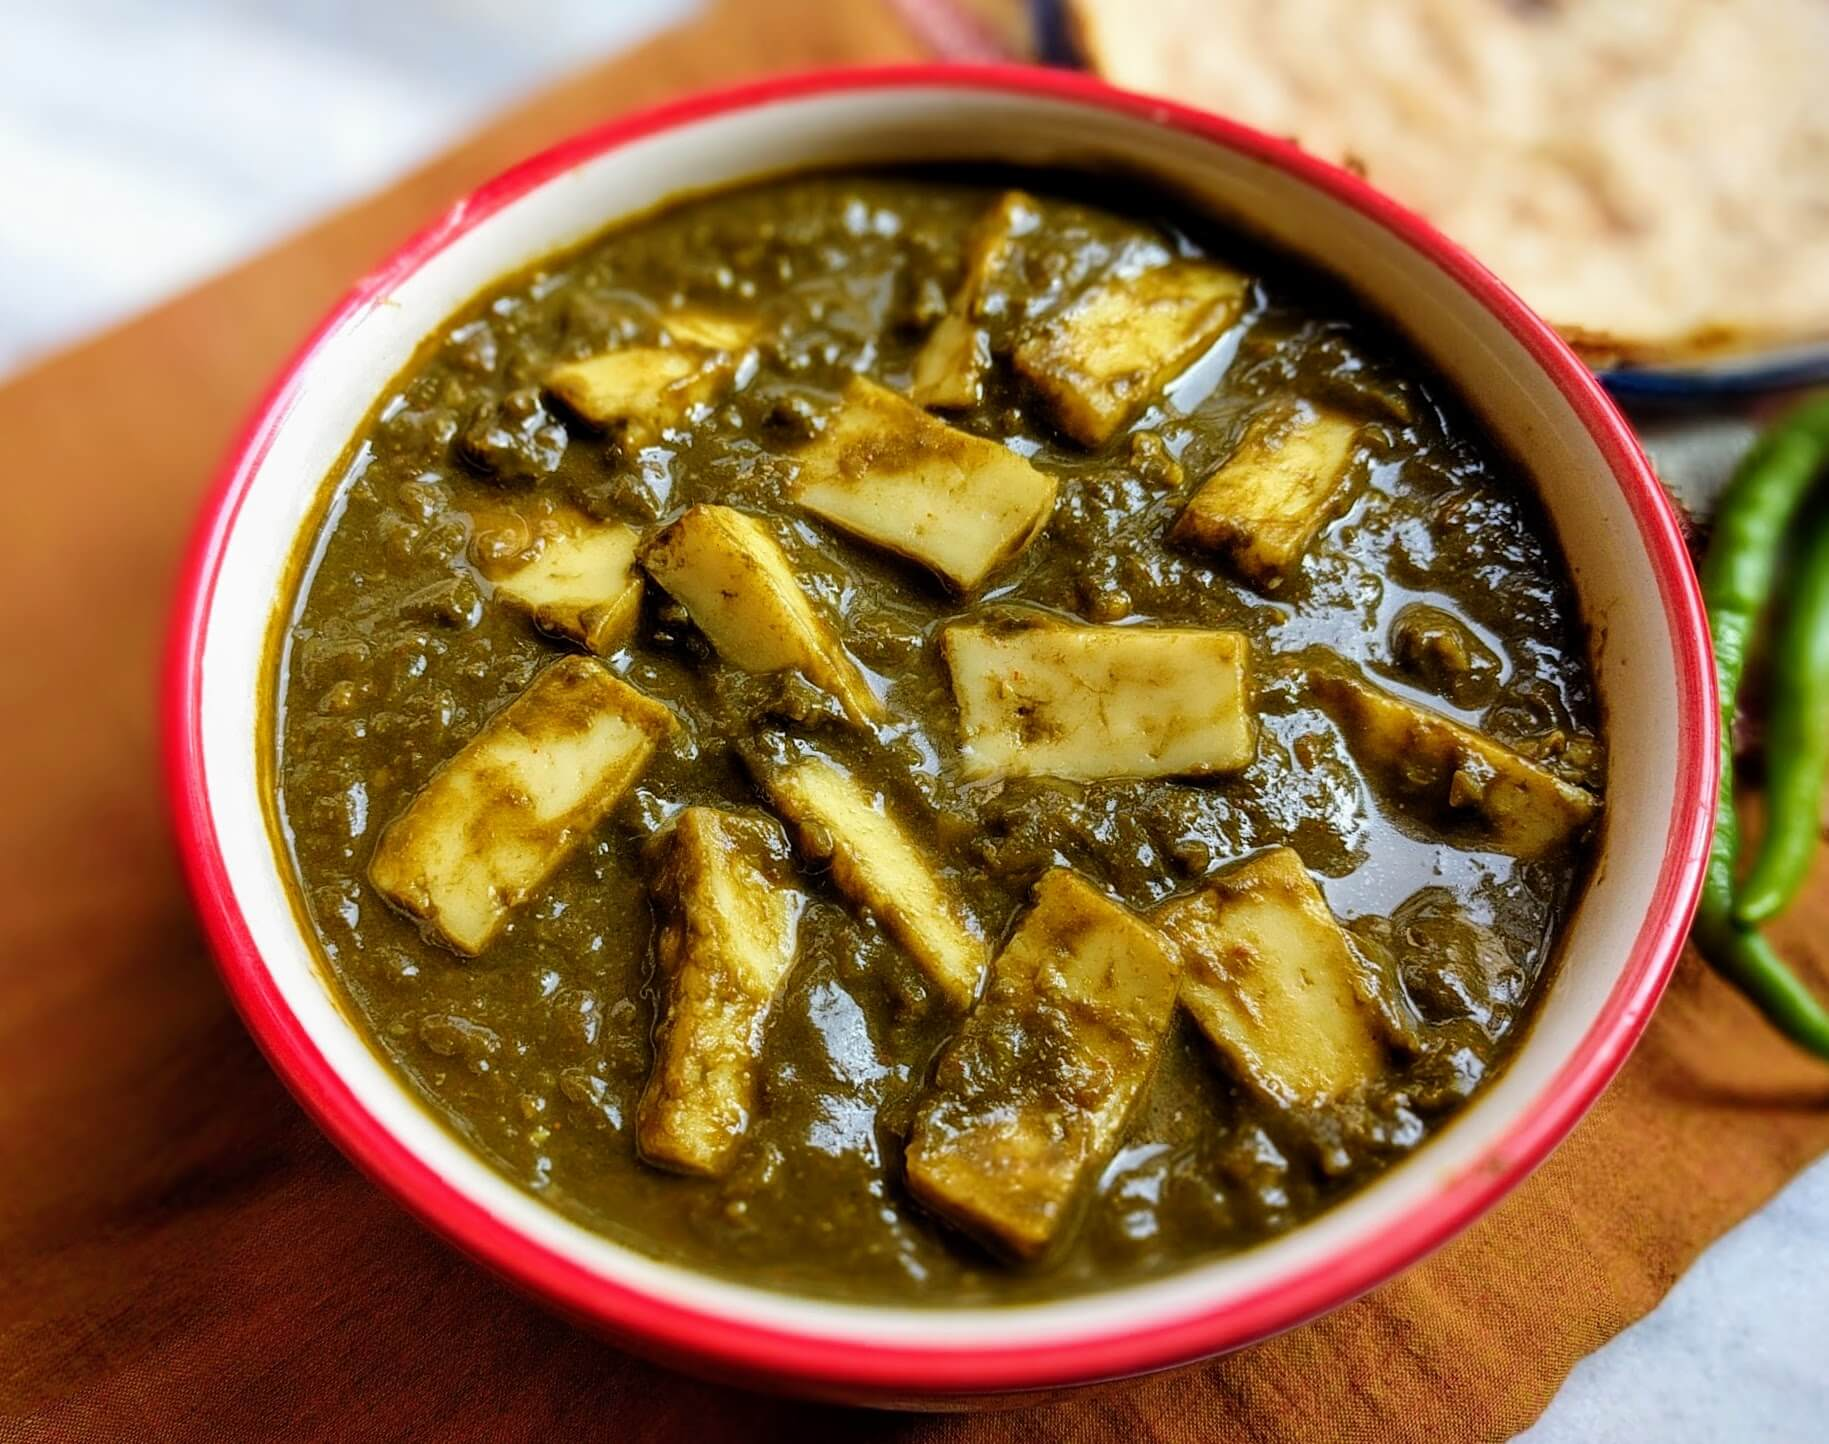 Palak Paneer Recipe   Spinach Curry with Paneer   VegeCravings Palak Paneer Recipe   Spinach Curry with Paneer